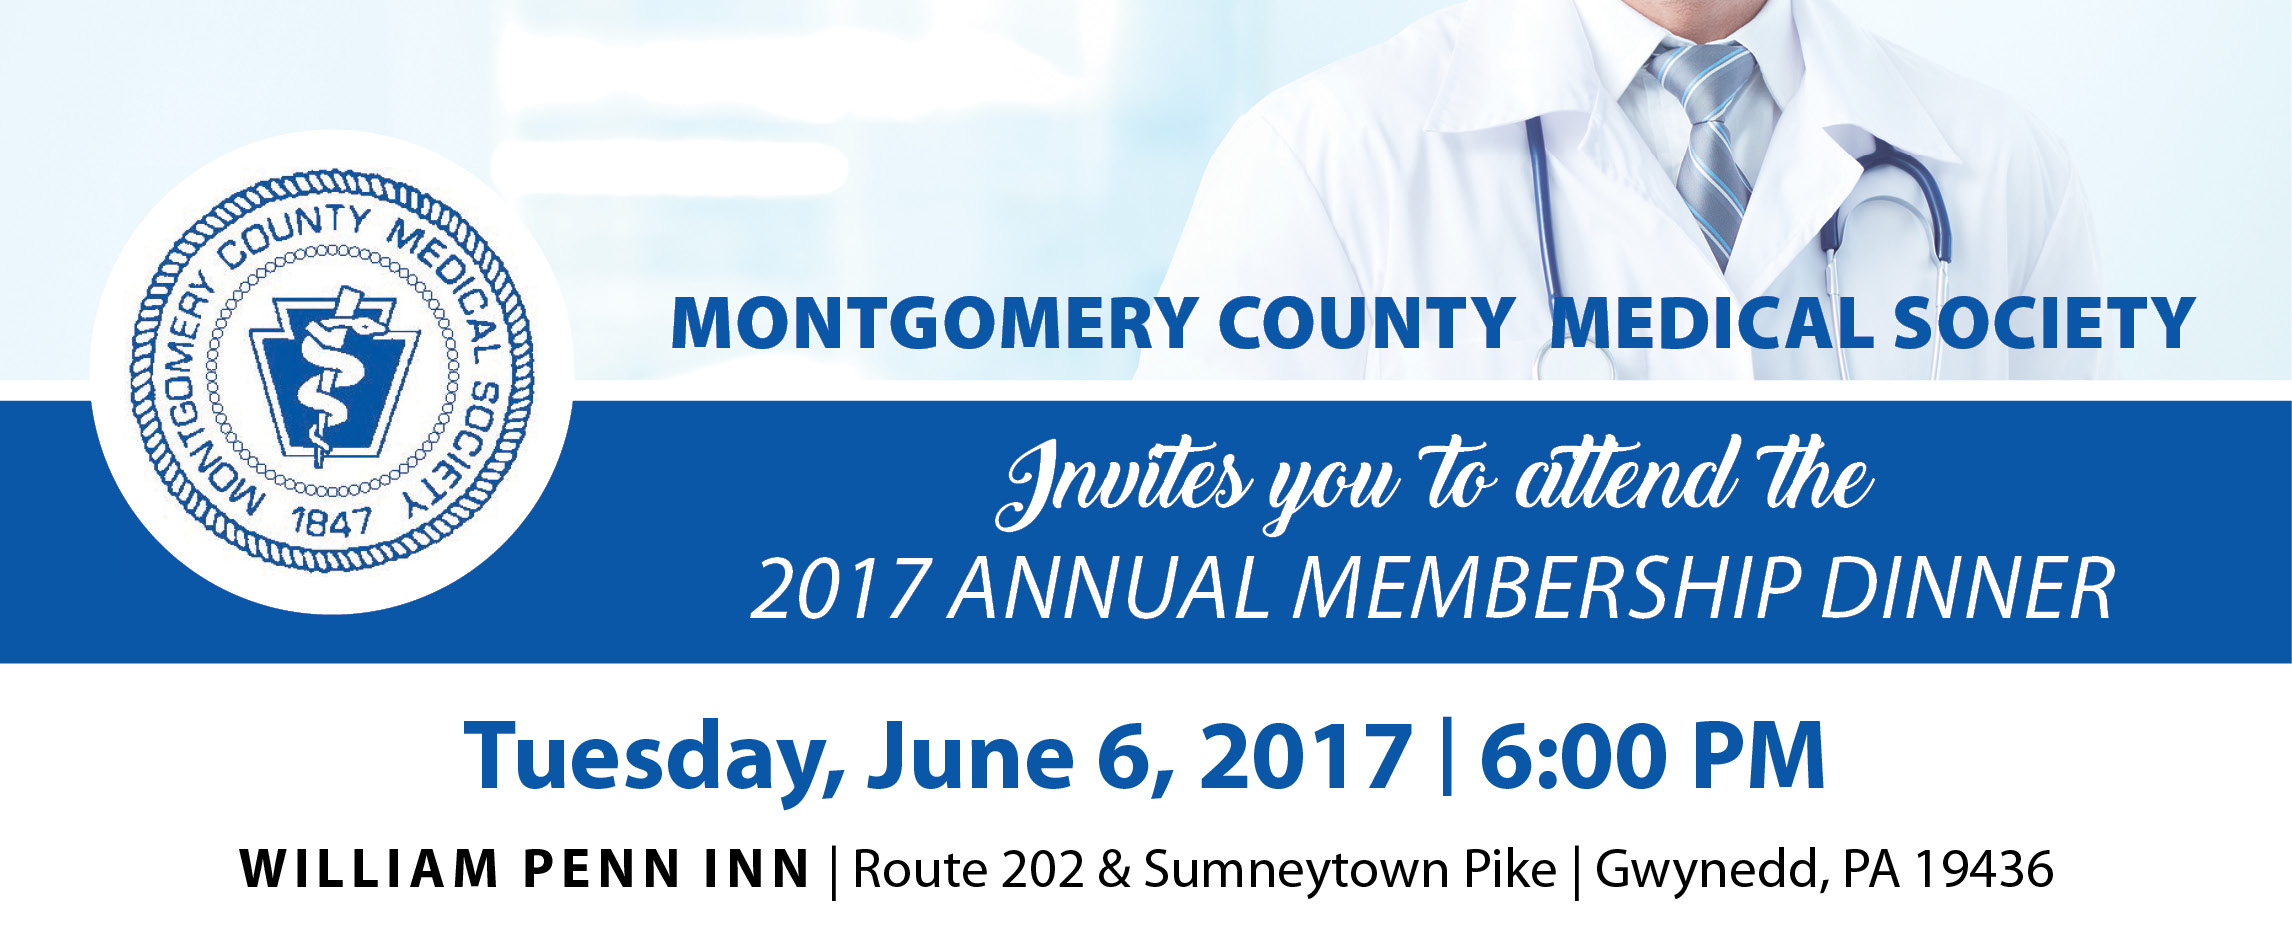 Montgomery County Medical Society 2017 Annual Membership Dinner